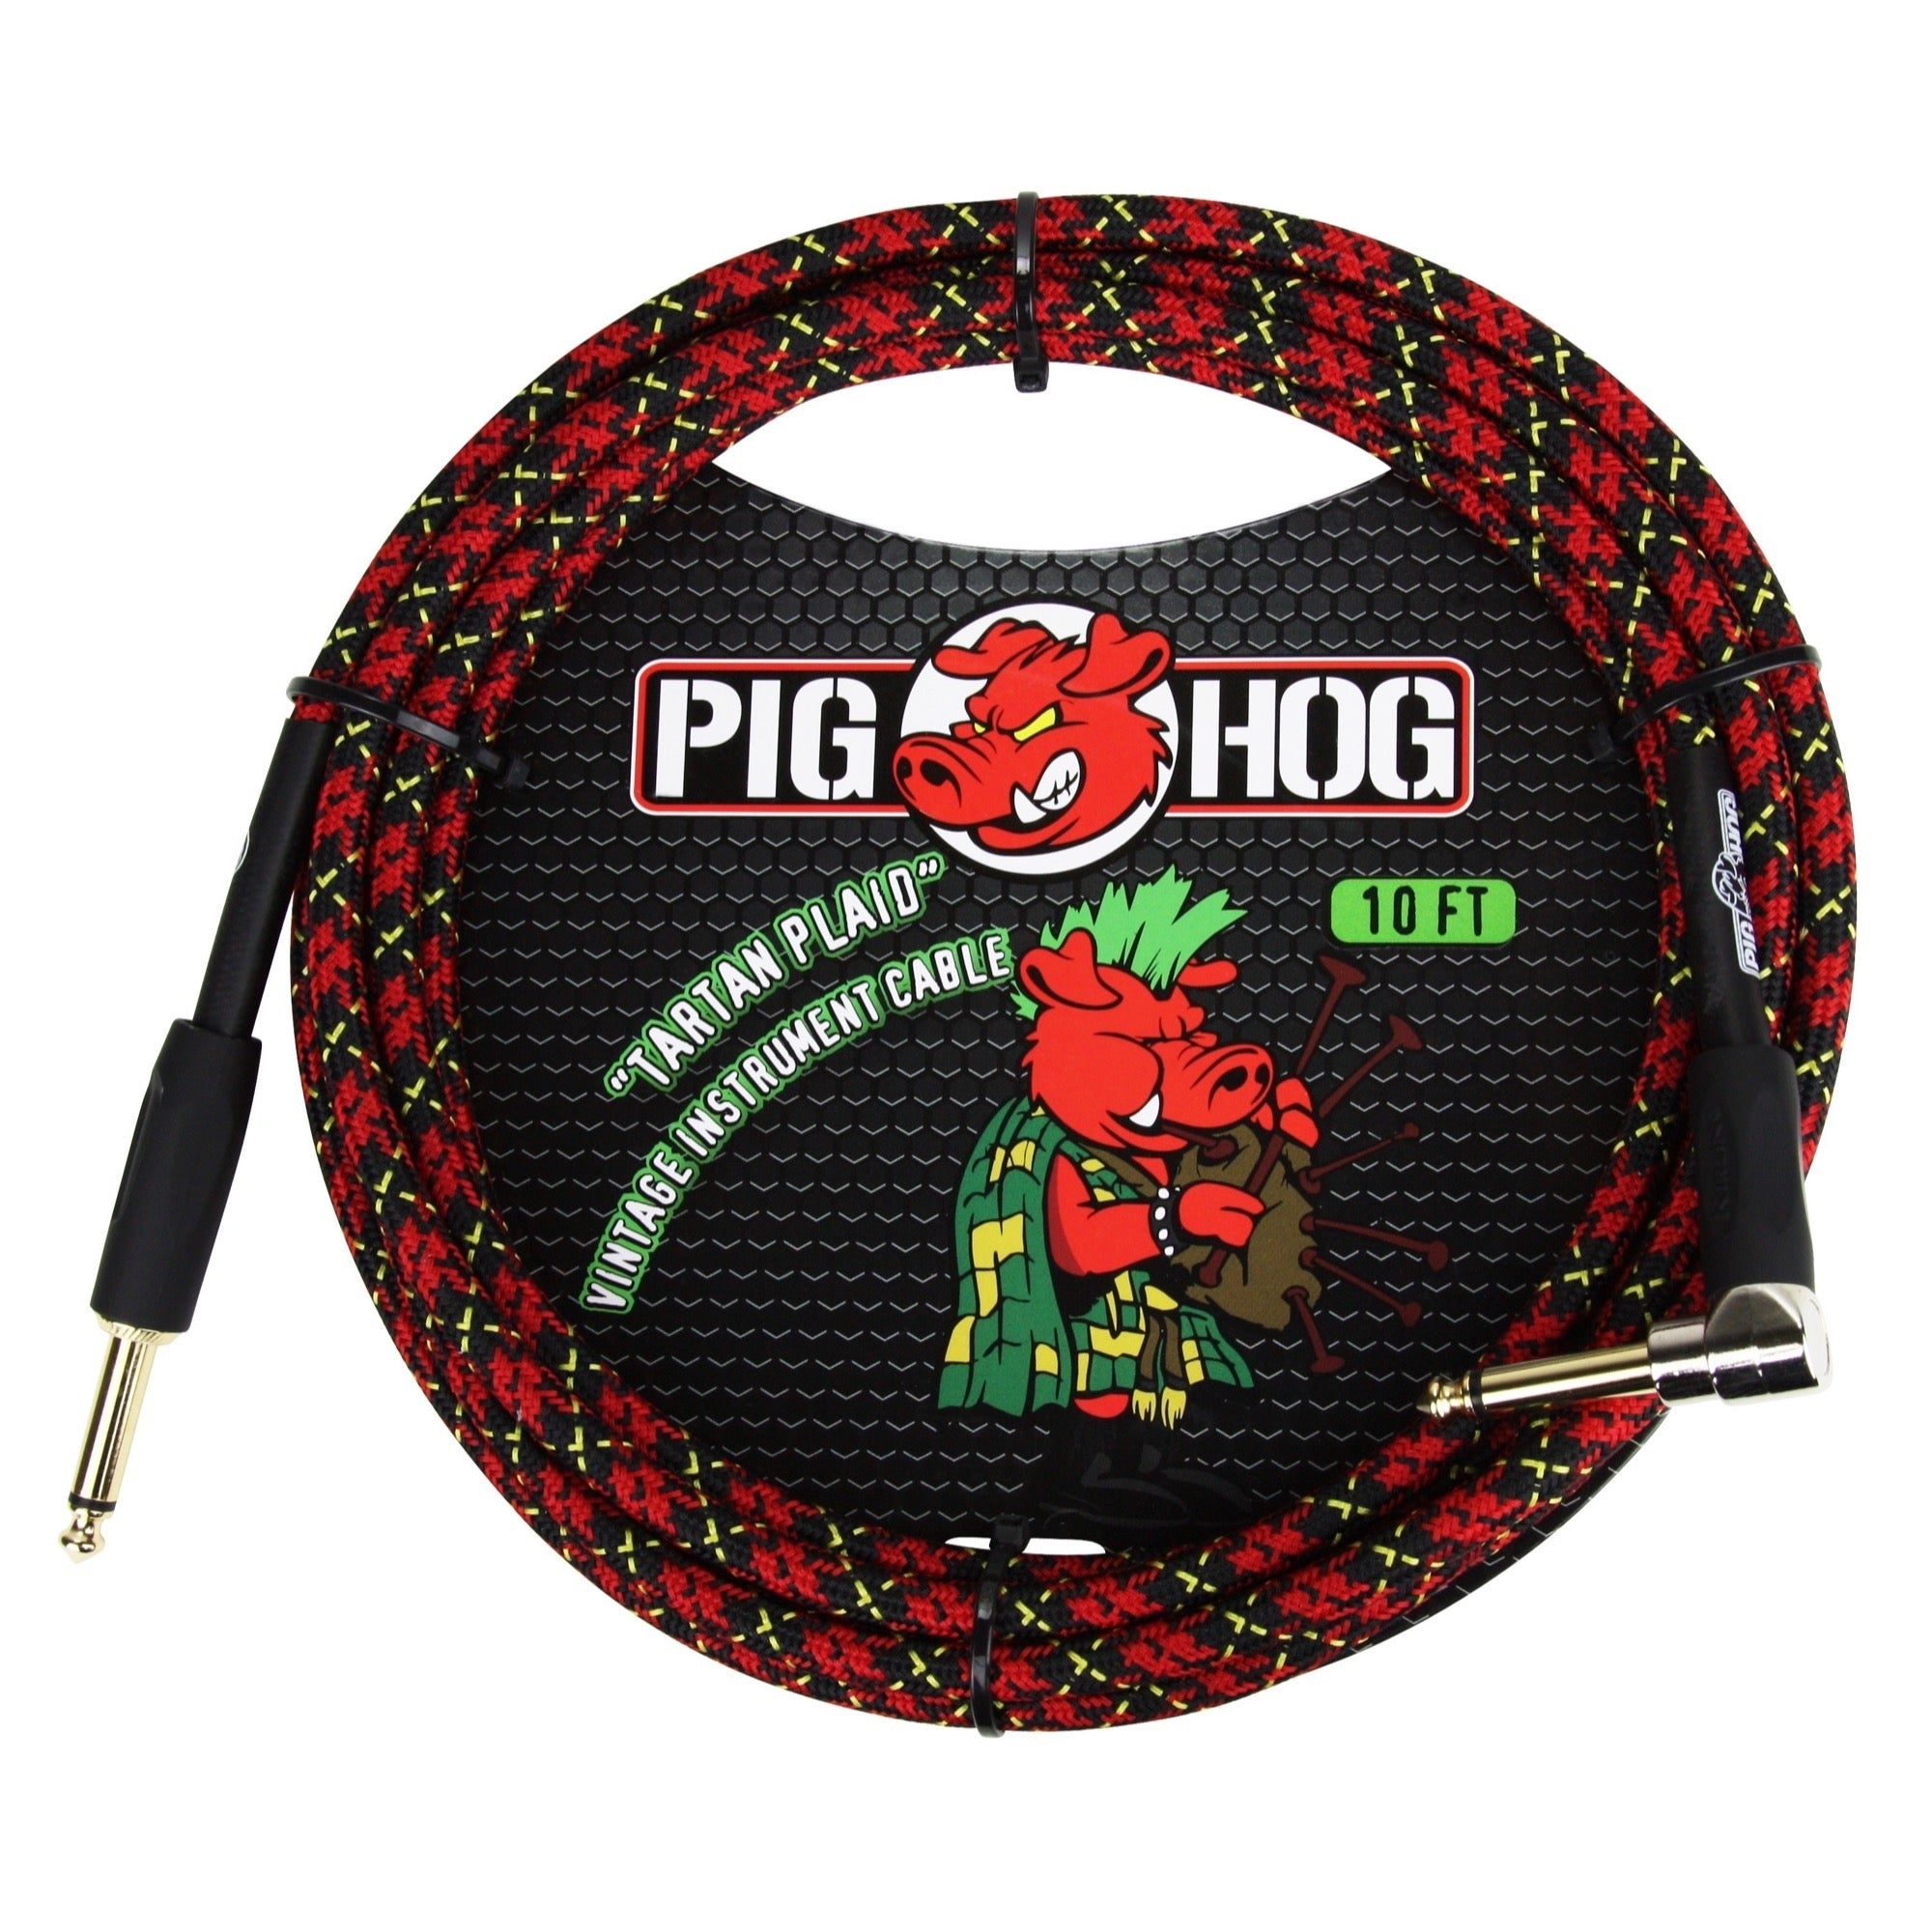 Pig Hog Color Instrument Cable, 1/4 Inch Straight to 1/4 Inch Right Angle, Tartan Plaid, 10 Foot